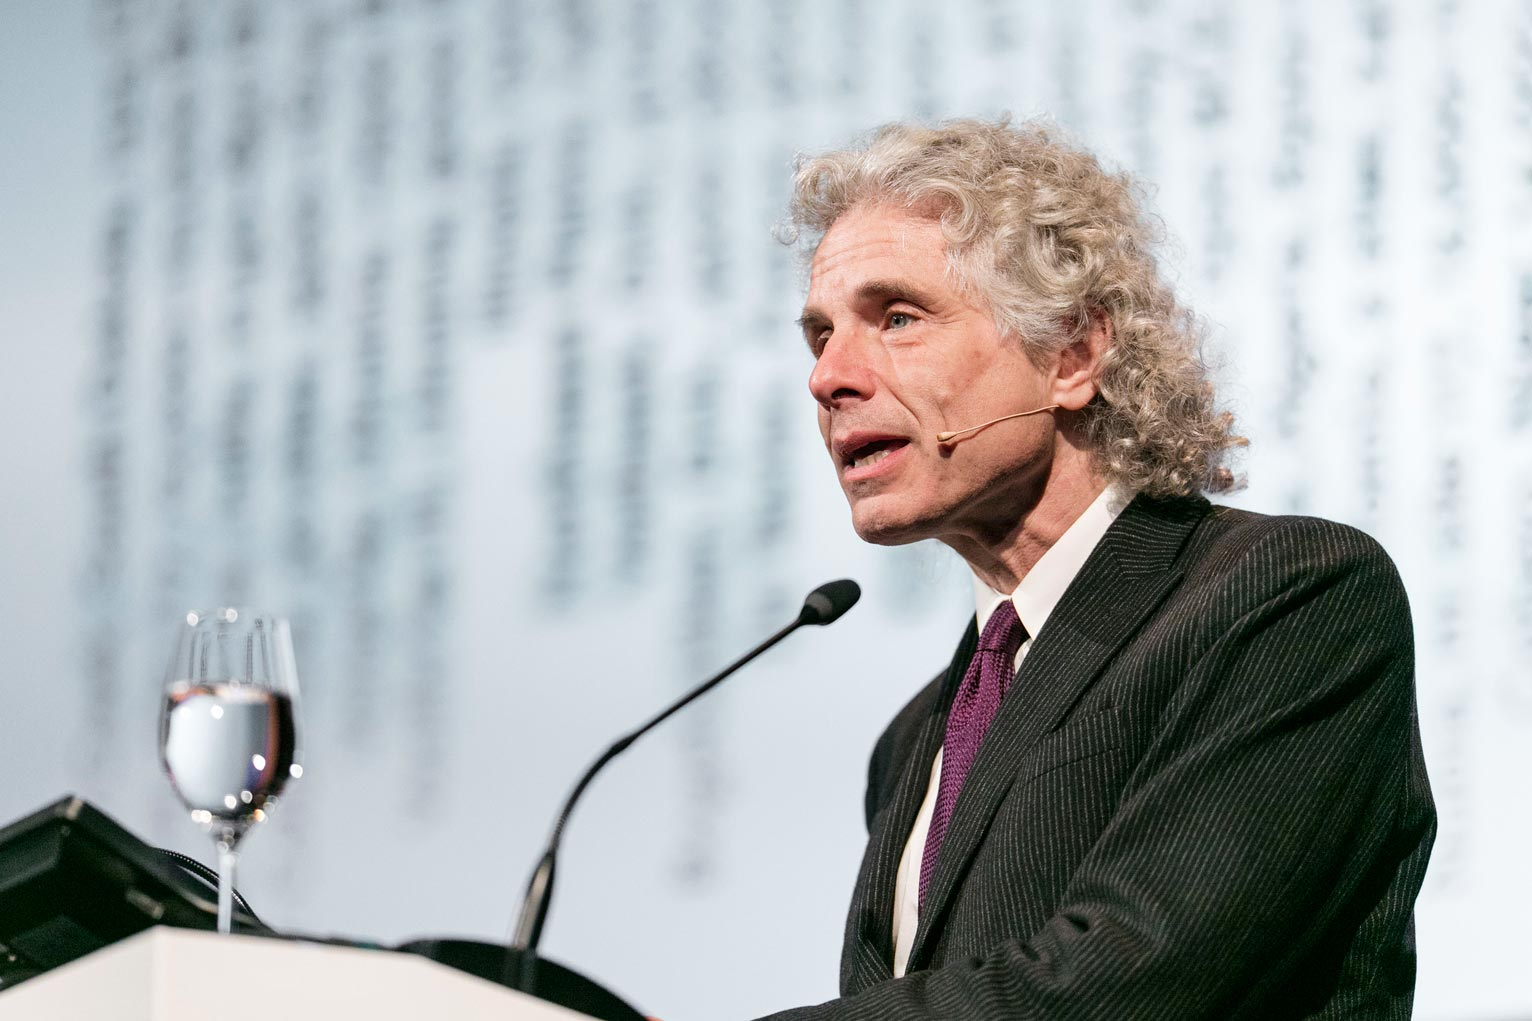 Steven Pinker shows that violence has been in decline over millennia